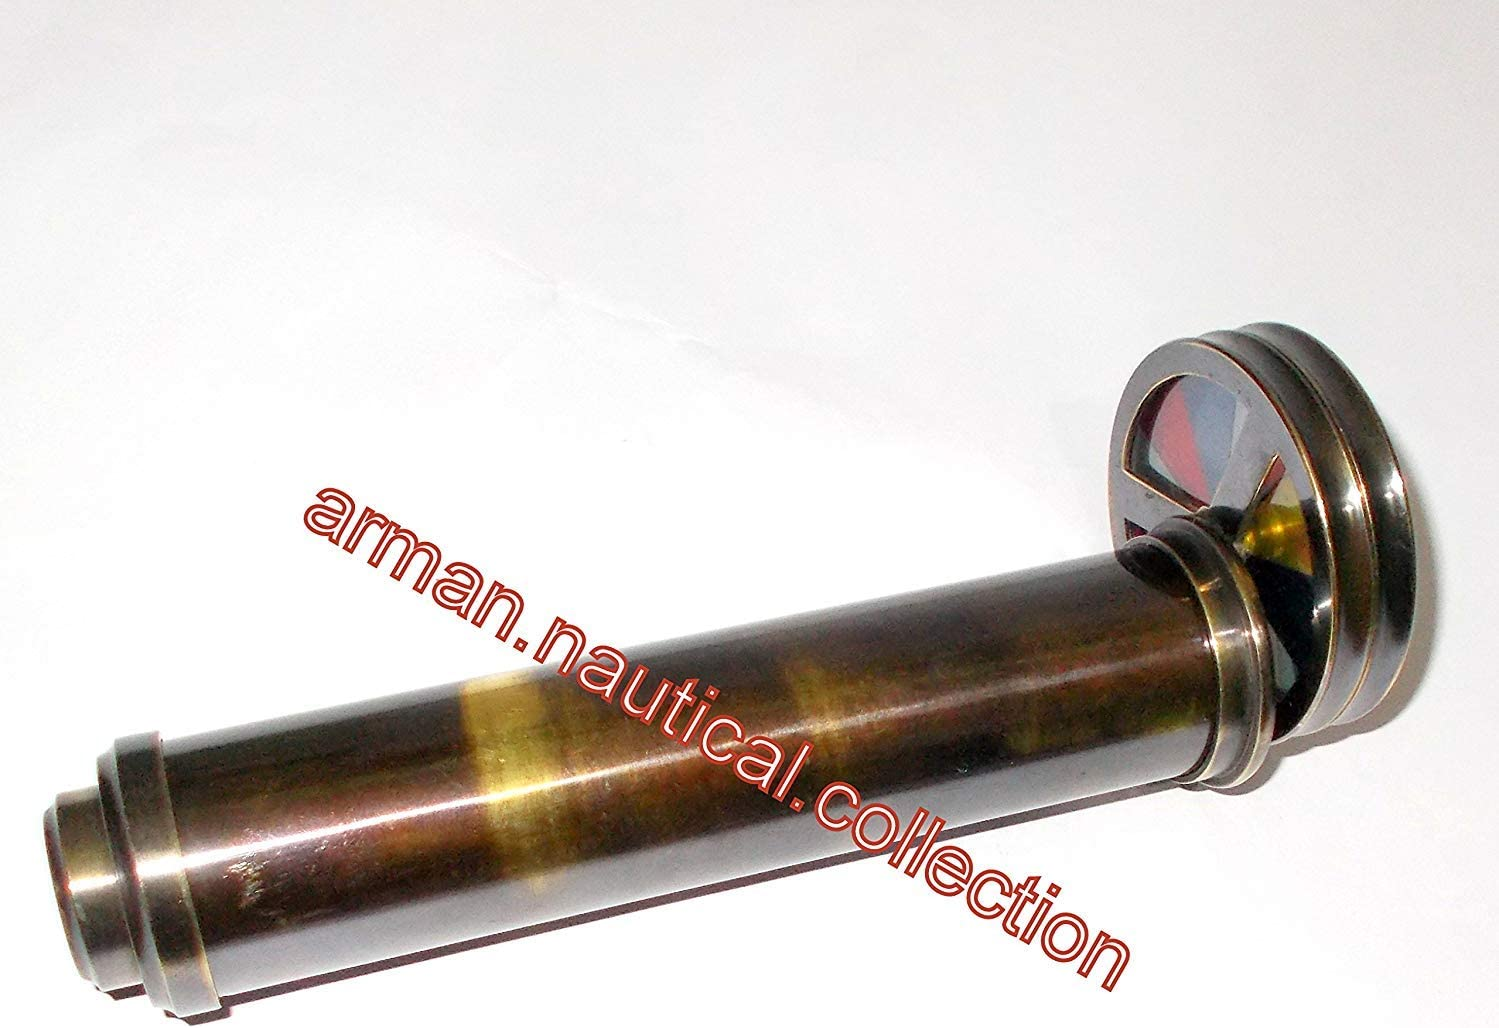 nautical gifts shop COLLECTIBLES Brass Double Wheel Kaleidoscope VINTAGE ITEM GIFT BRASS TELESCOPE b